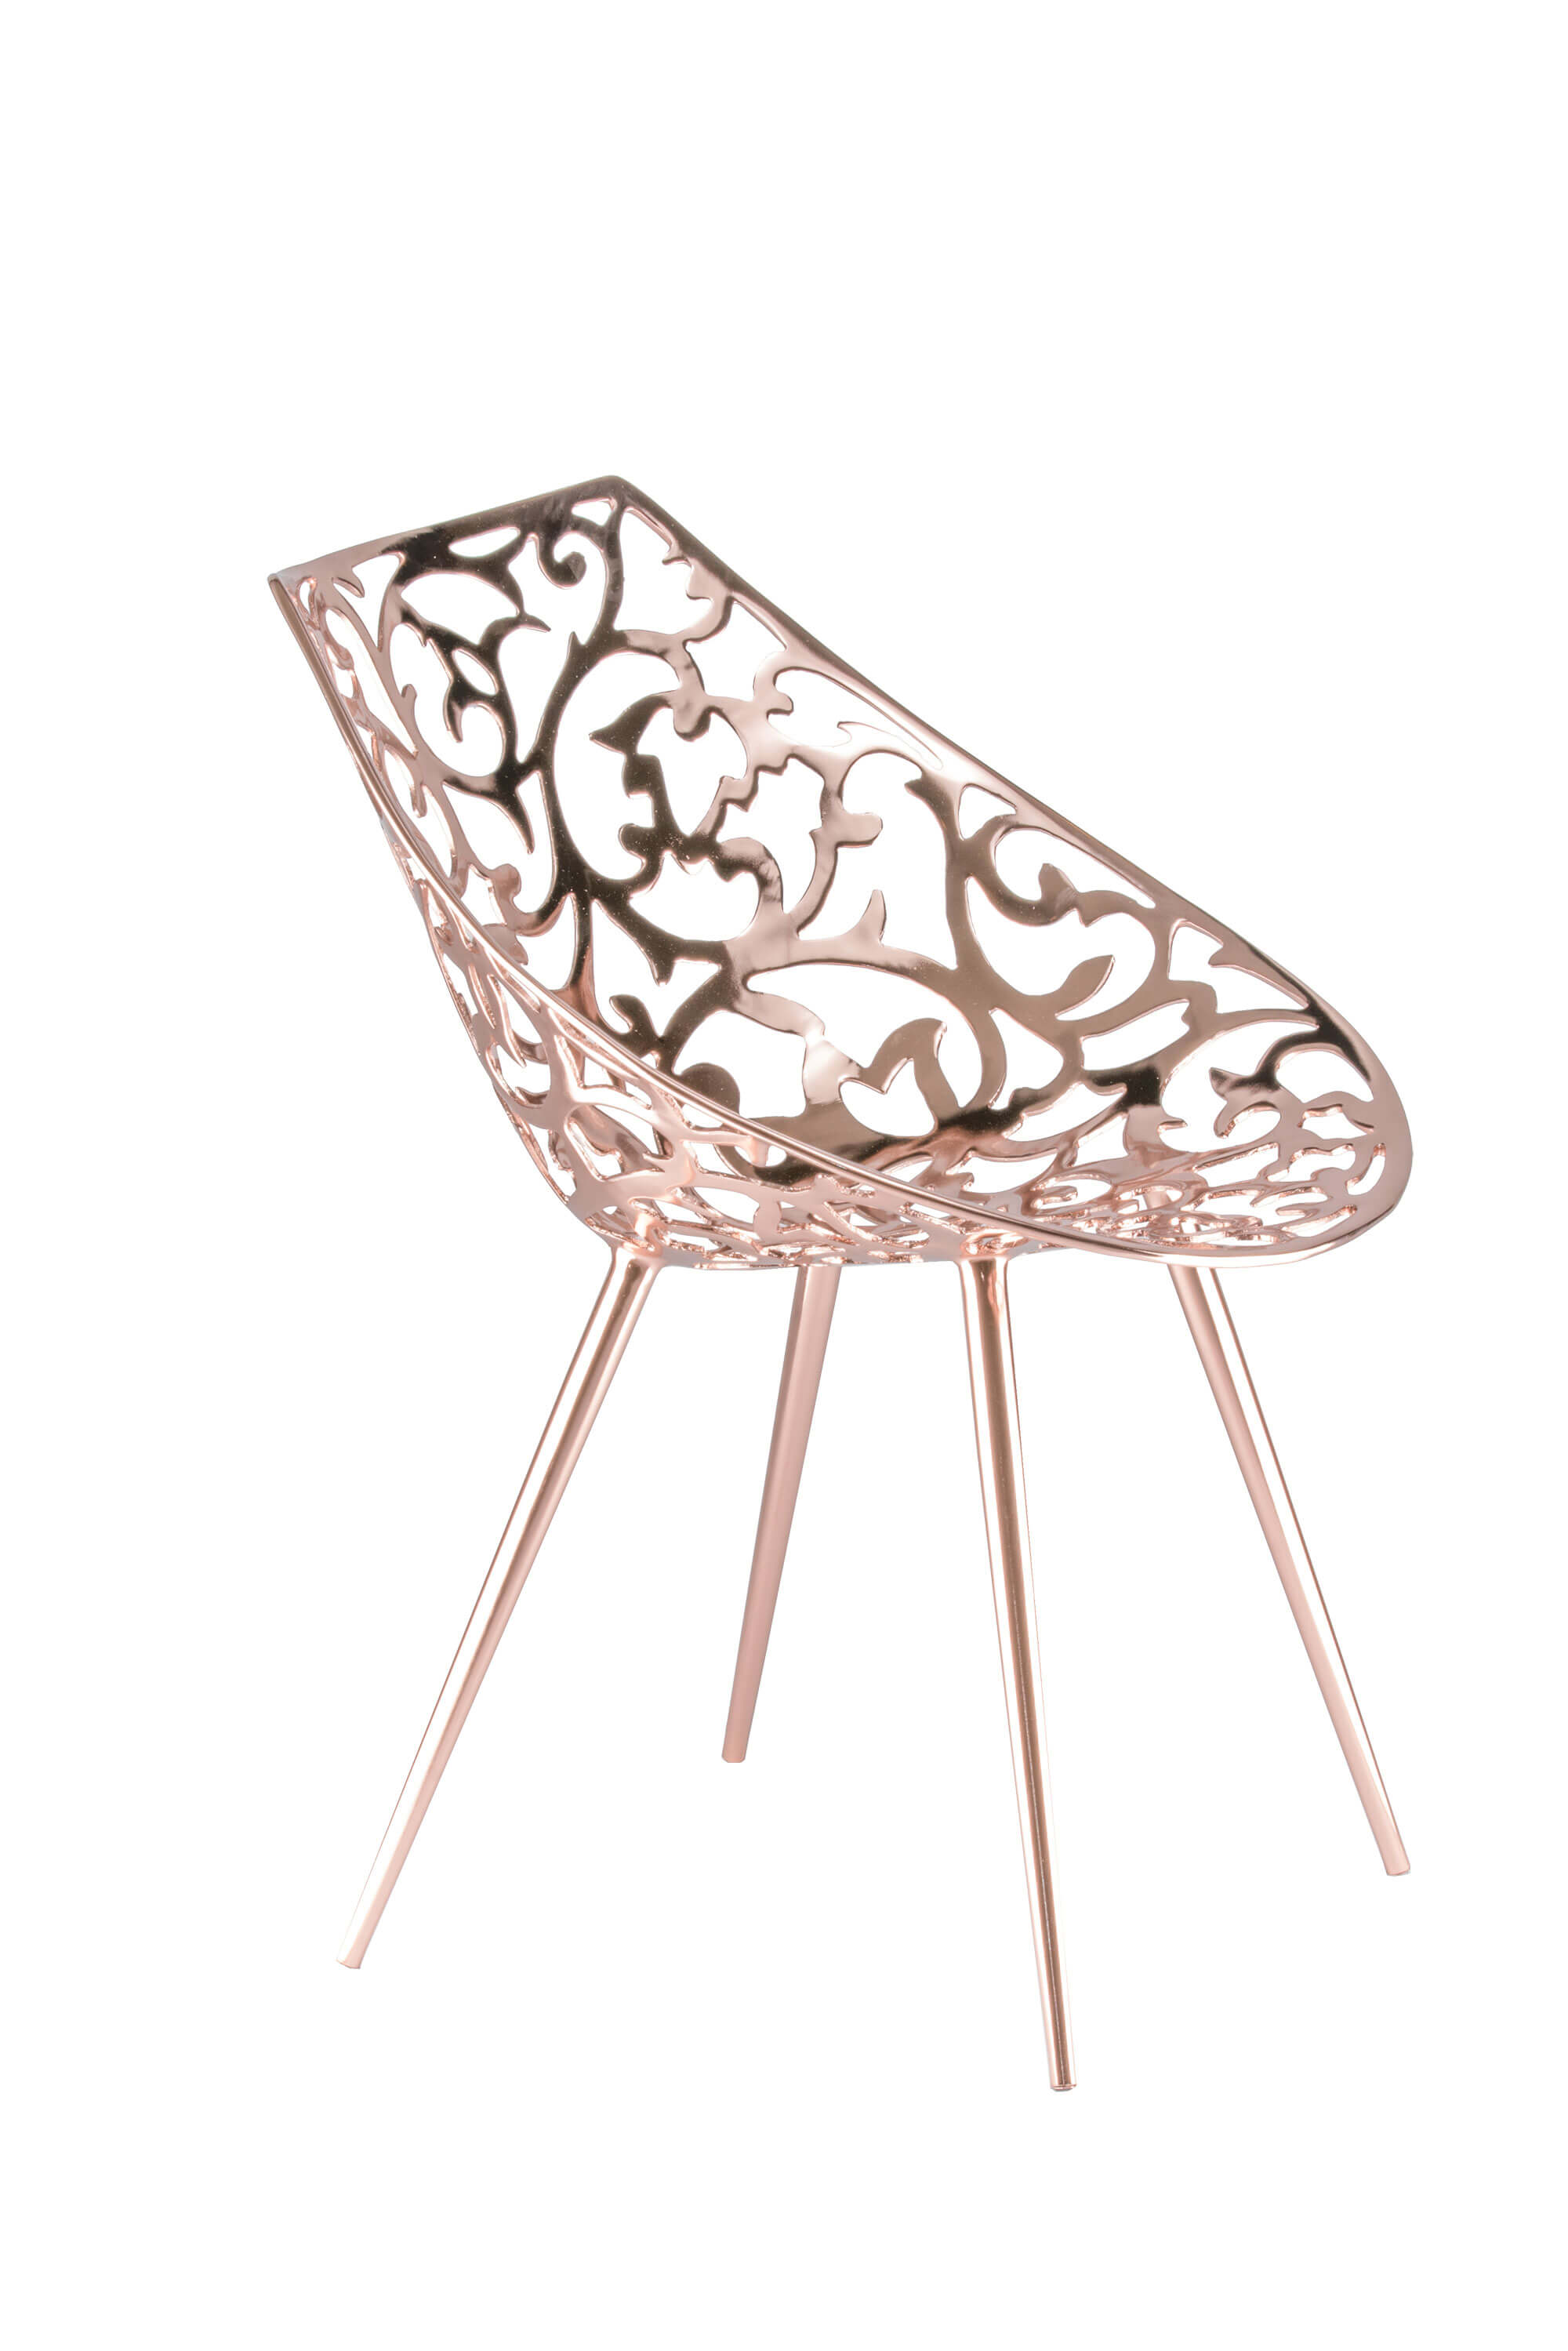 Contemporary Design Best Interior Designers in the World - Philippe Starck - Miss Lacy Chair contemporary design Contemporary Design: Best Designers and Architects in the World Contemporary Design Best Interior Designers in the World Philippe Starck Miss Lacy Chair